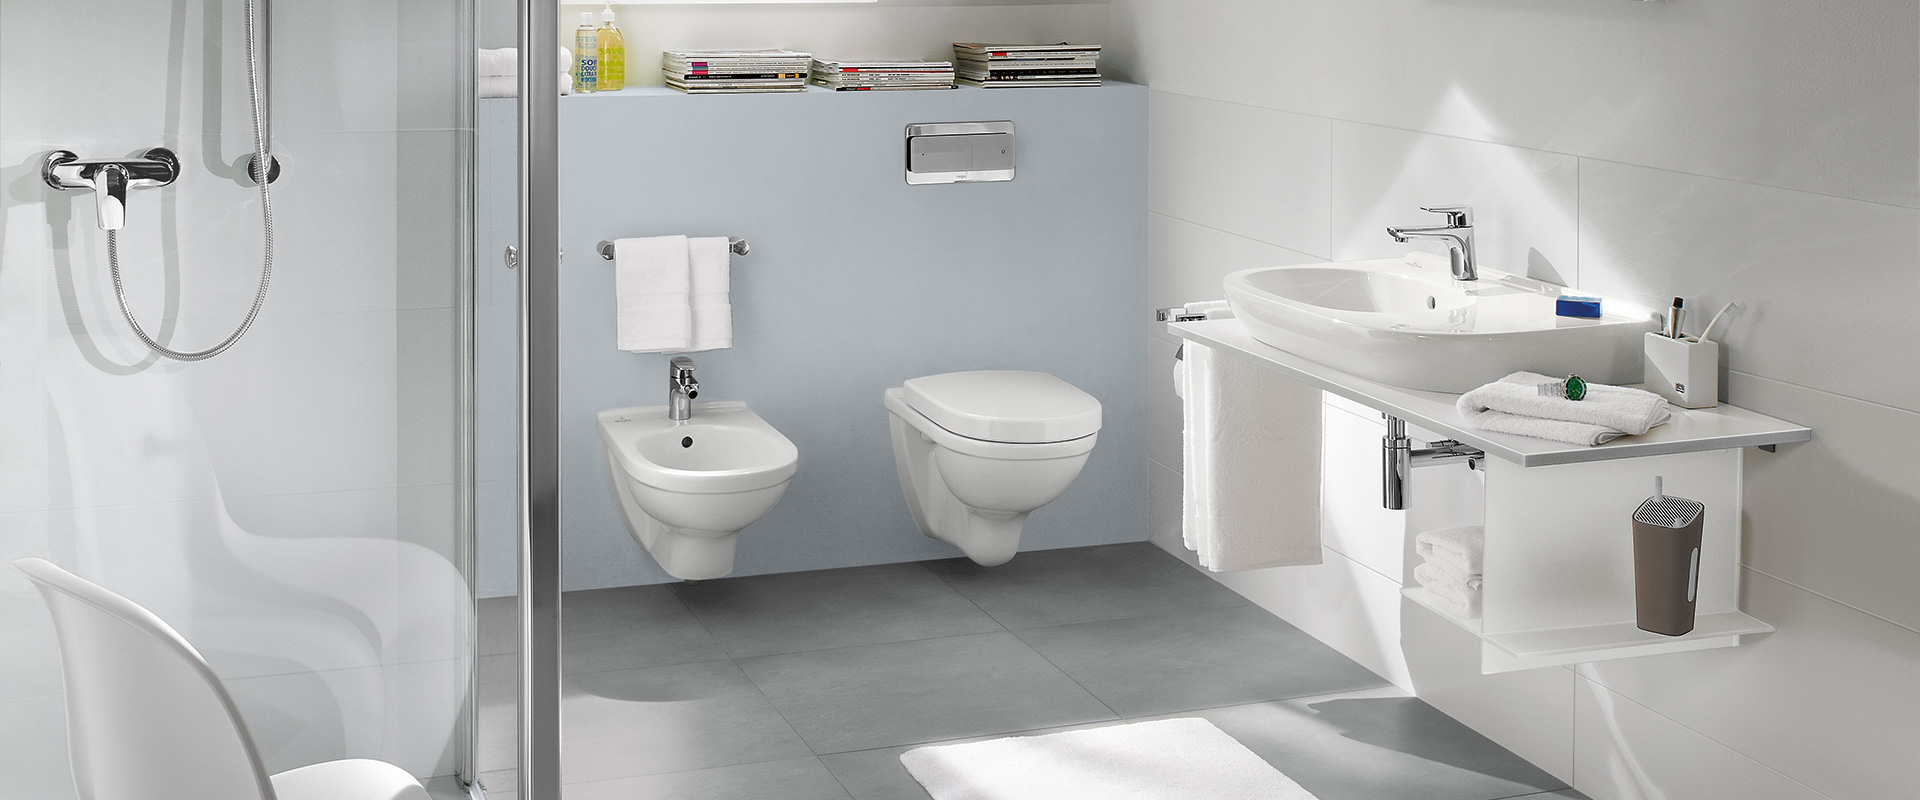 onovo cer - Bathroom Designs Villeroy And Boch